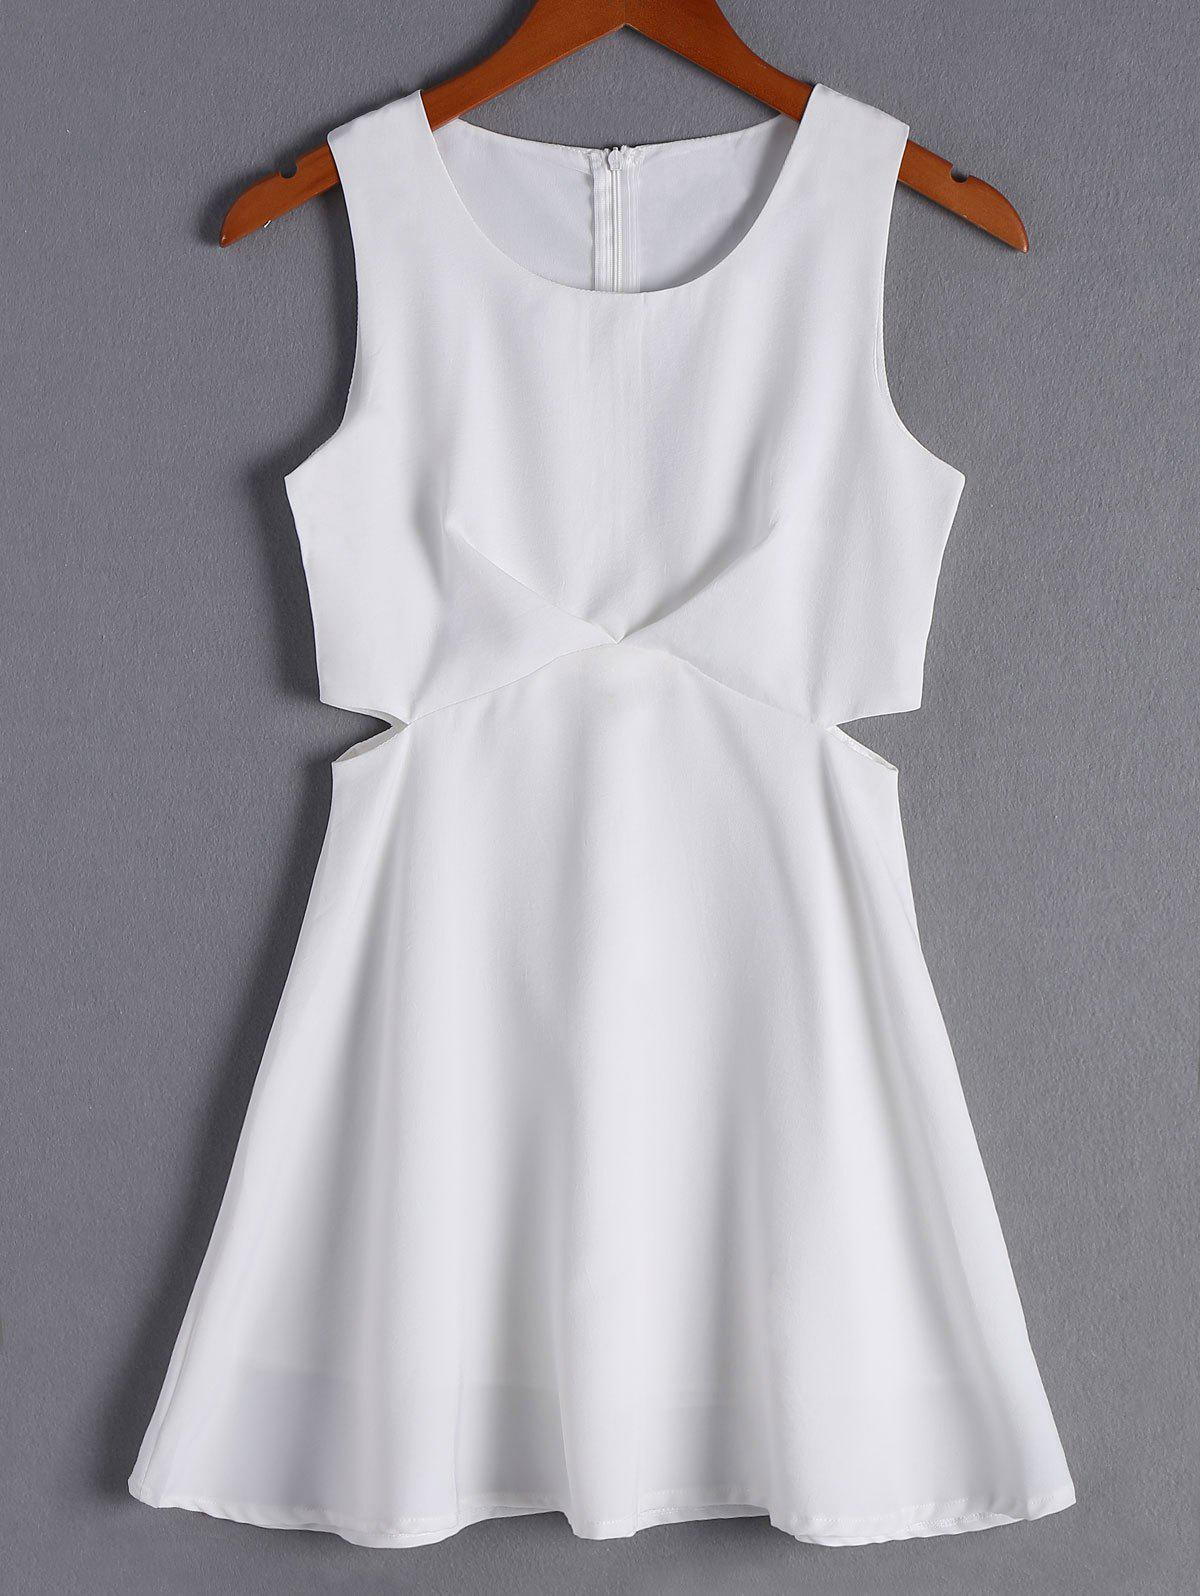 Simple Women's Solid Color Scoop Neck Cut Out Sleeveless Flare Dress